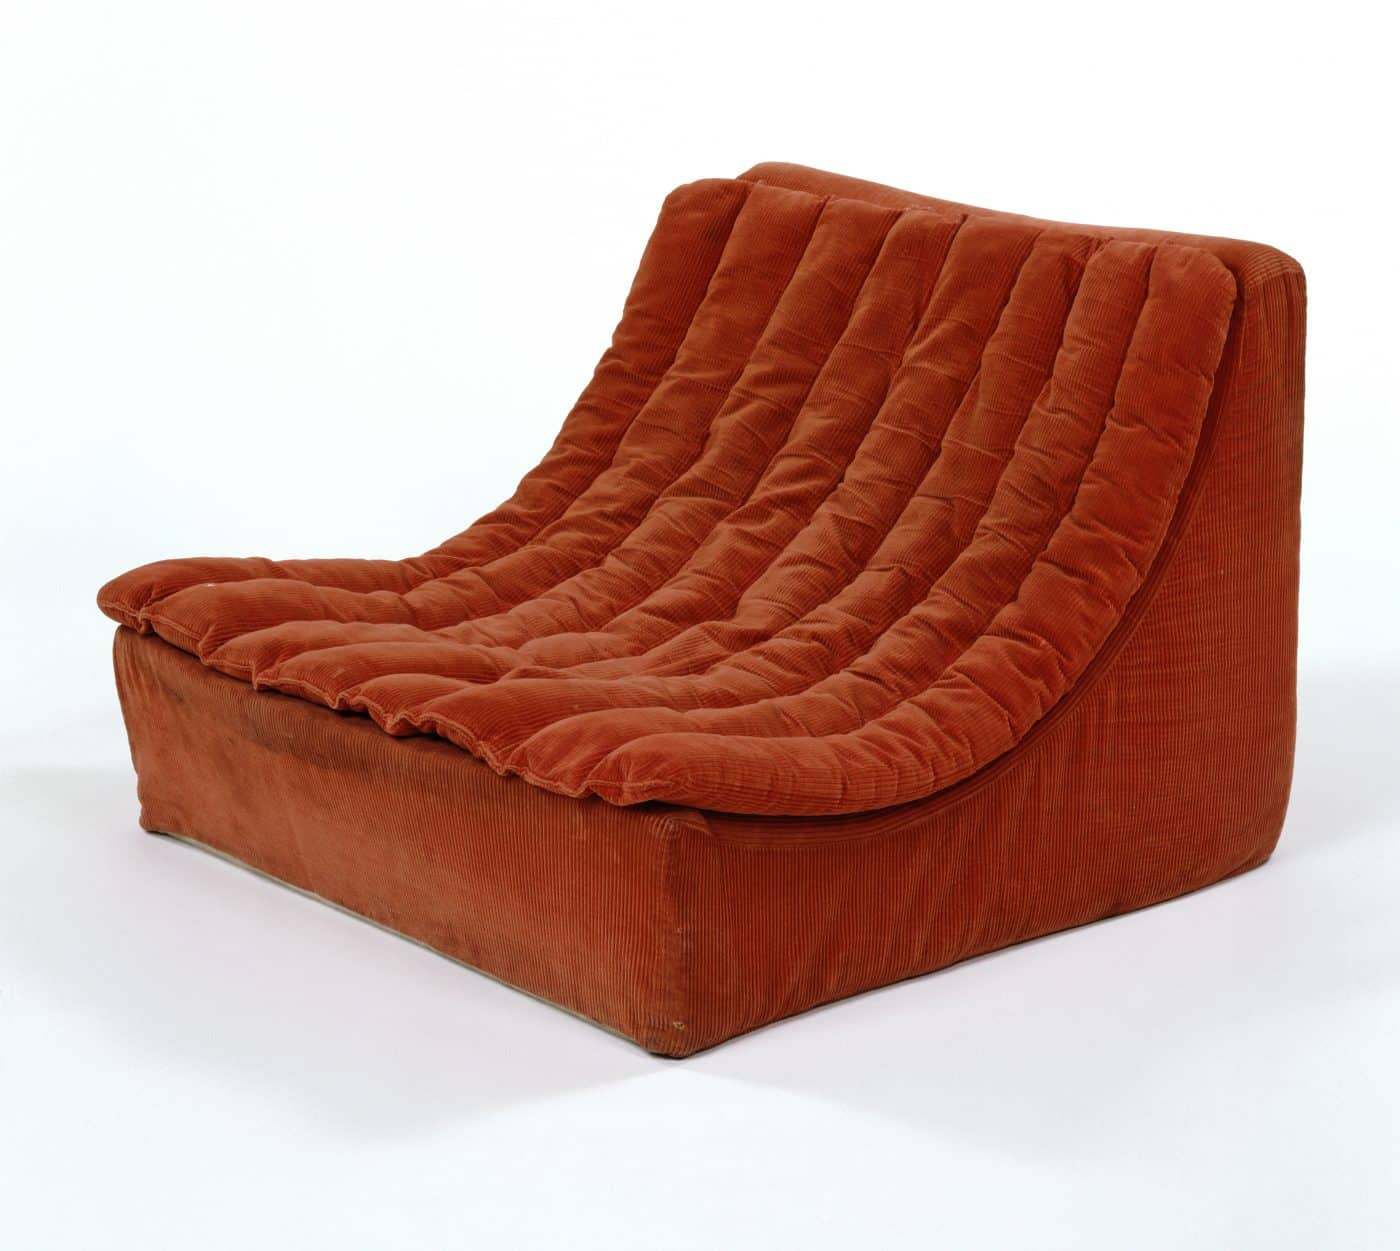 A Terence Conran Scoop chair